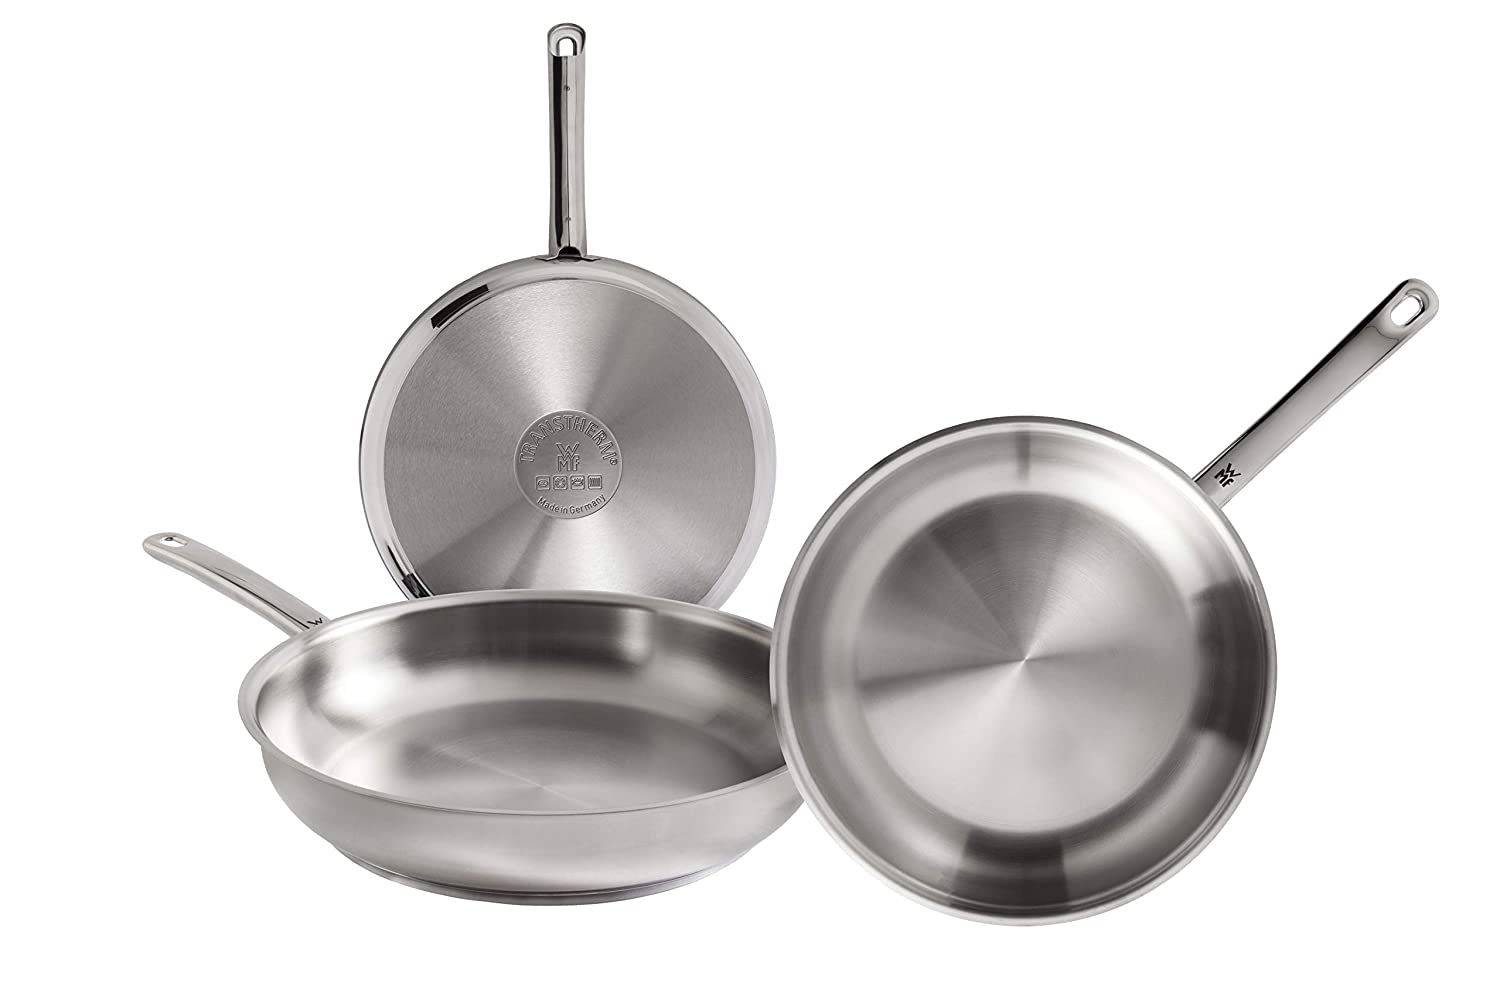 Amazon.com: WMF Profi Set of 3 Stainless Steel Frying Pans ...